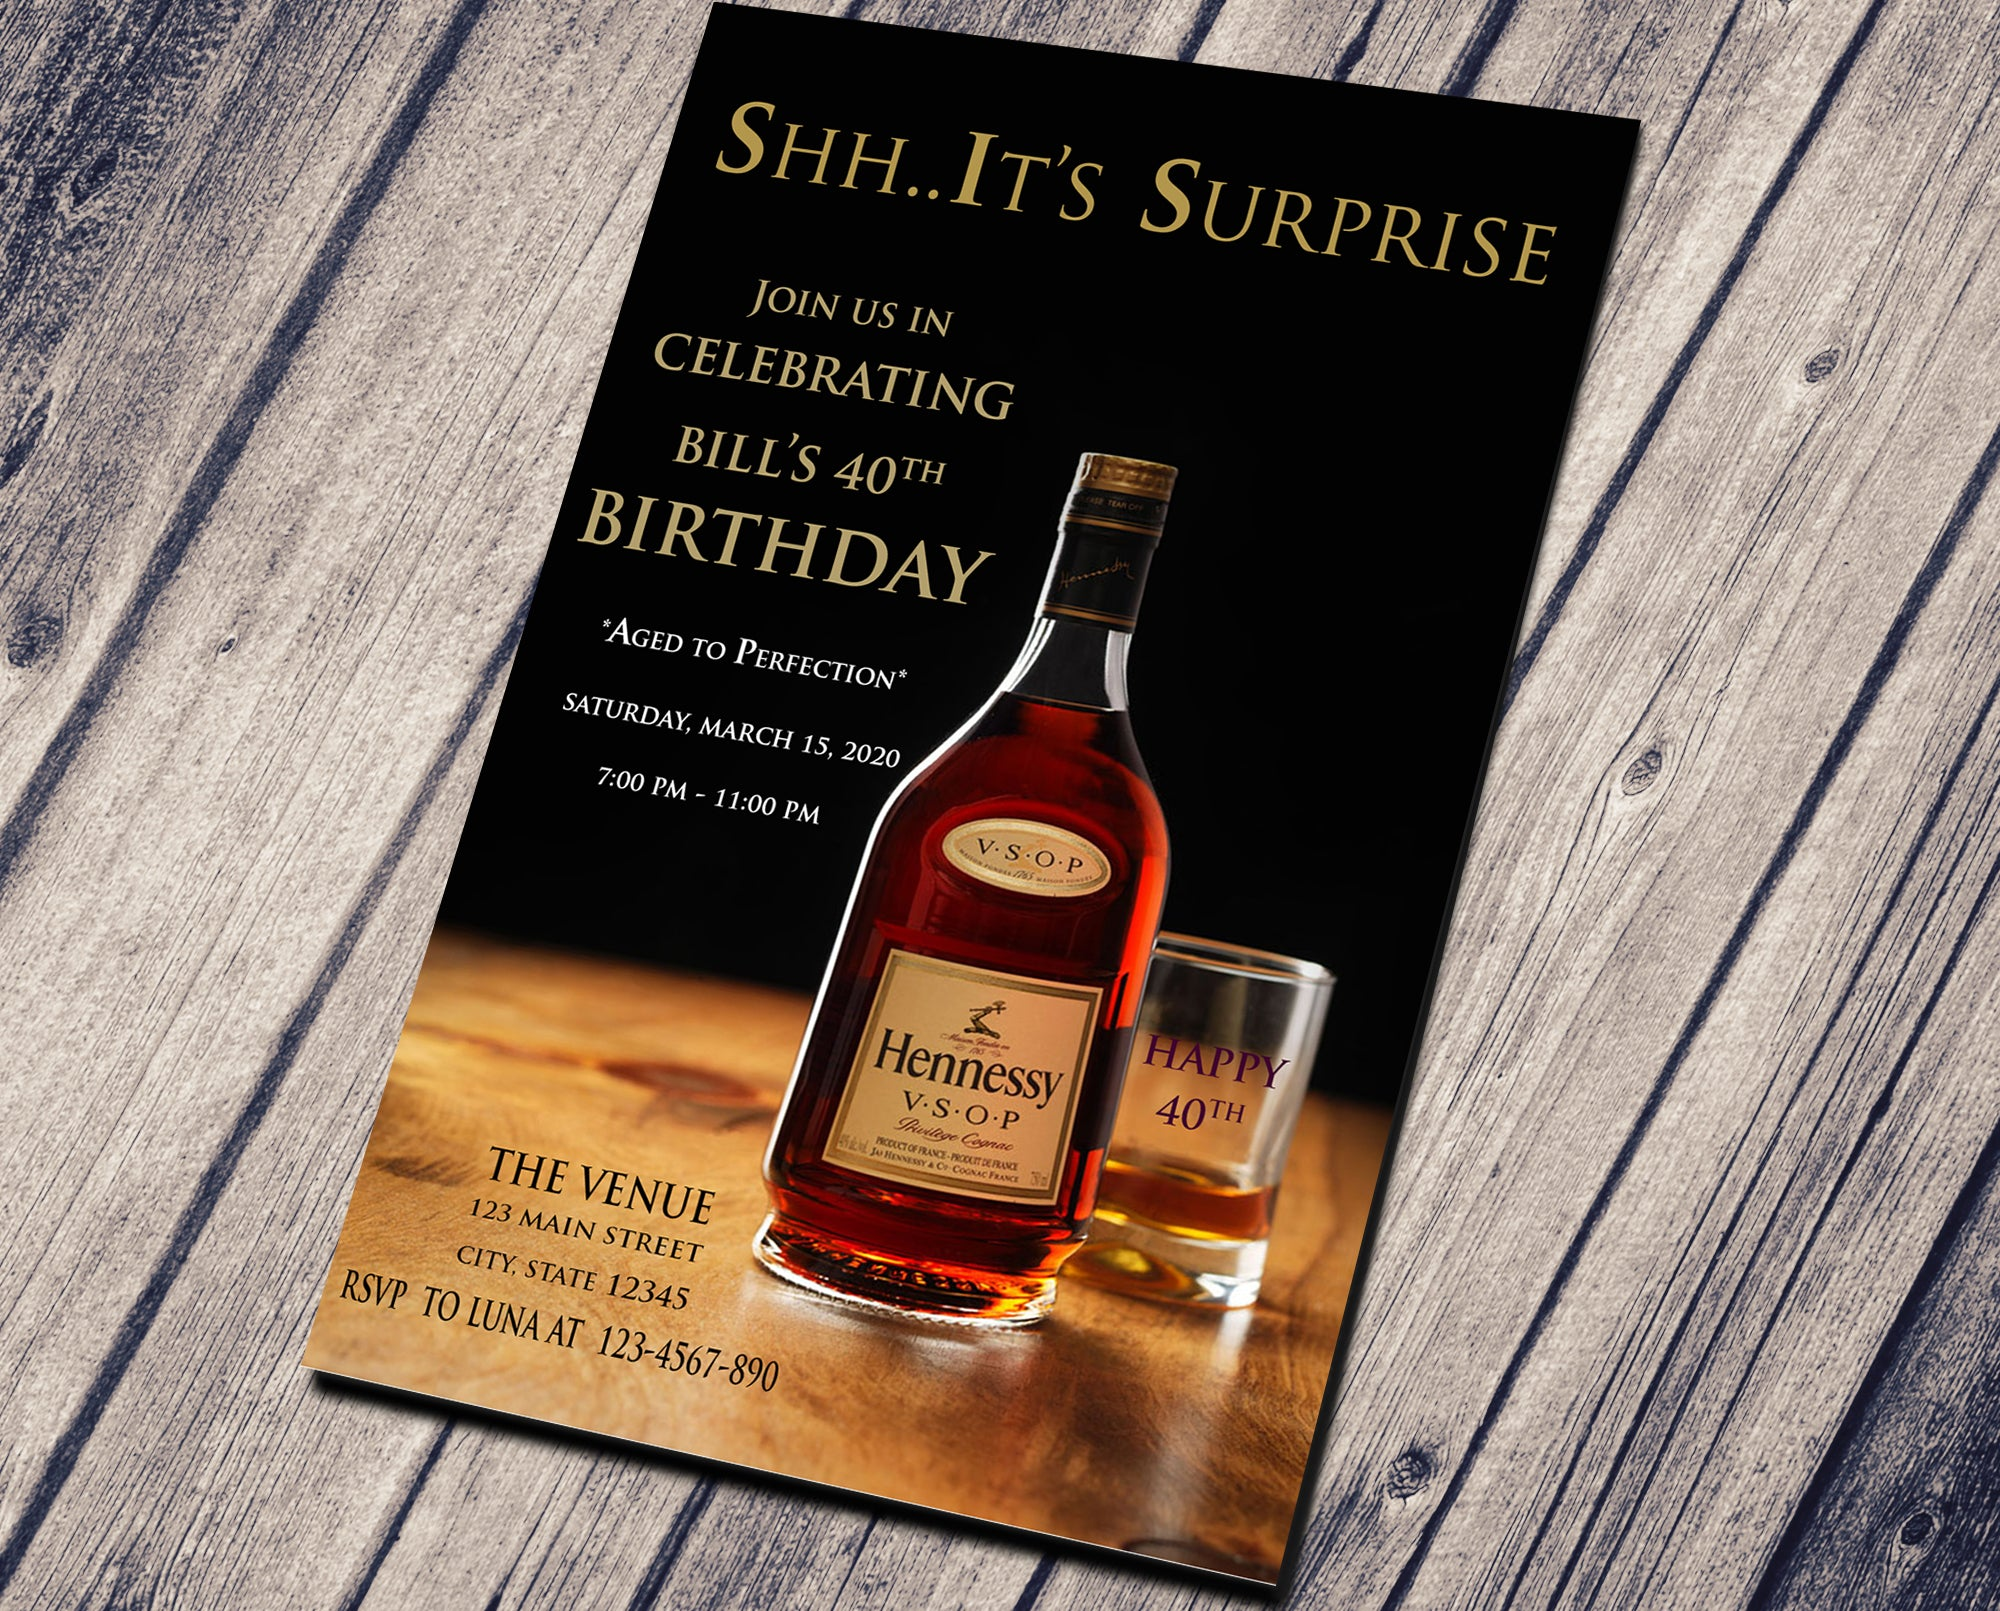 SURPRISE PARTY BIRTHDAY INVITATION - CUSTOM INVITATION FOR ADULT